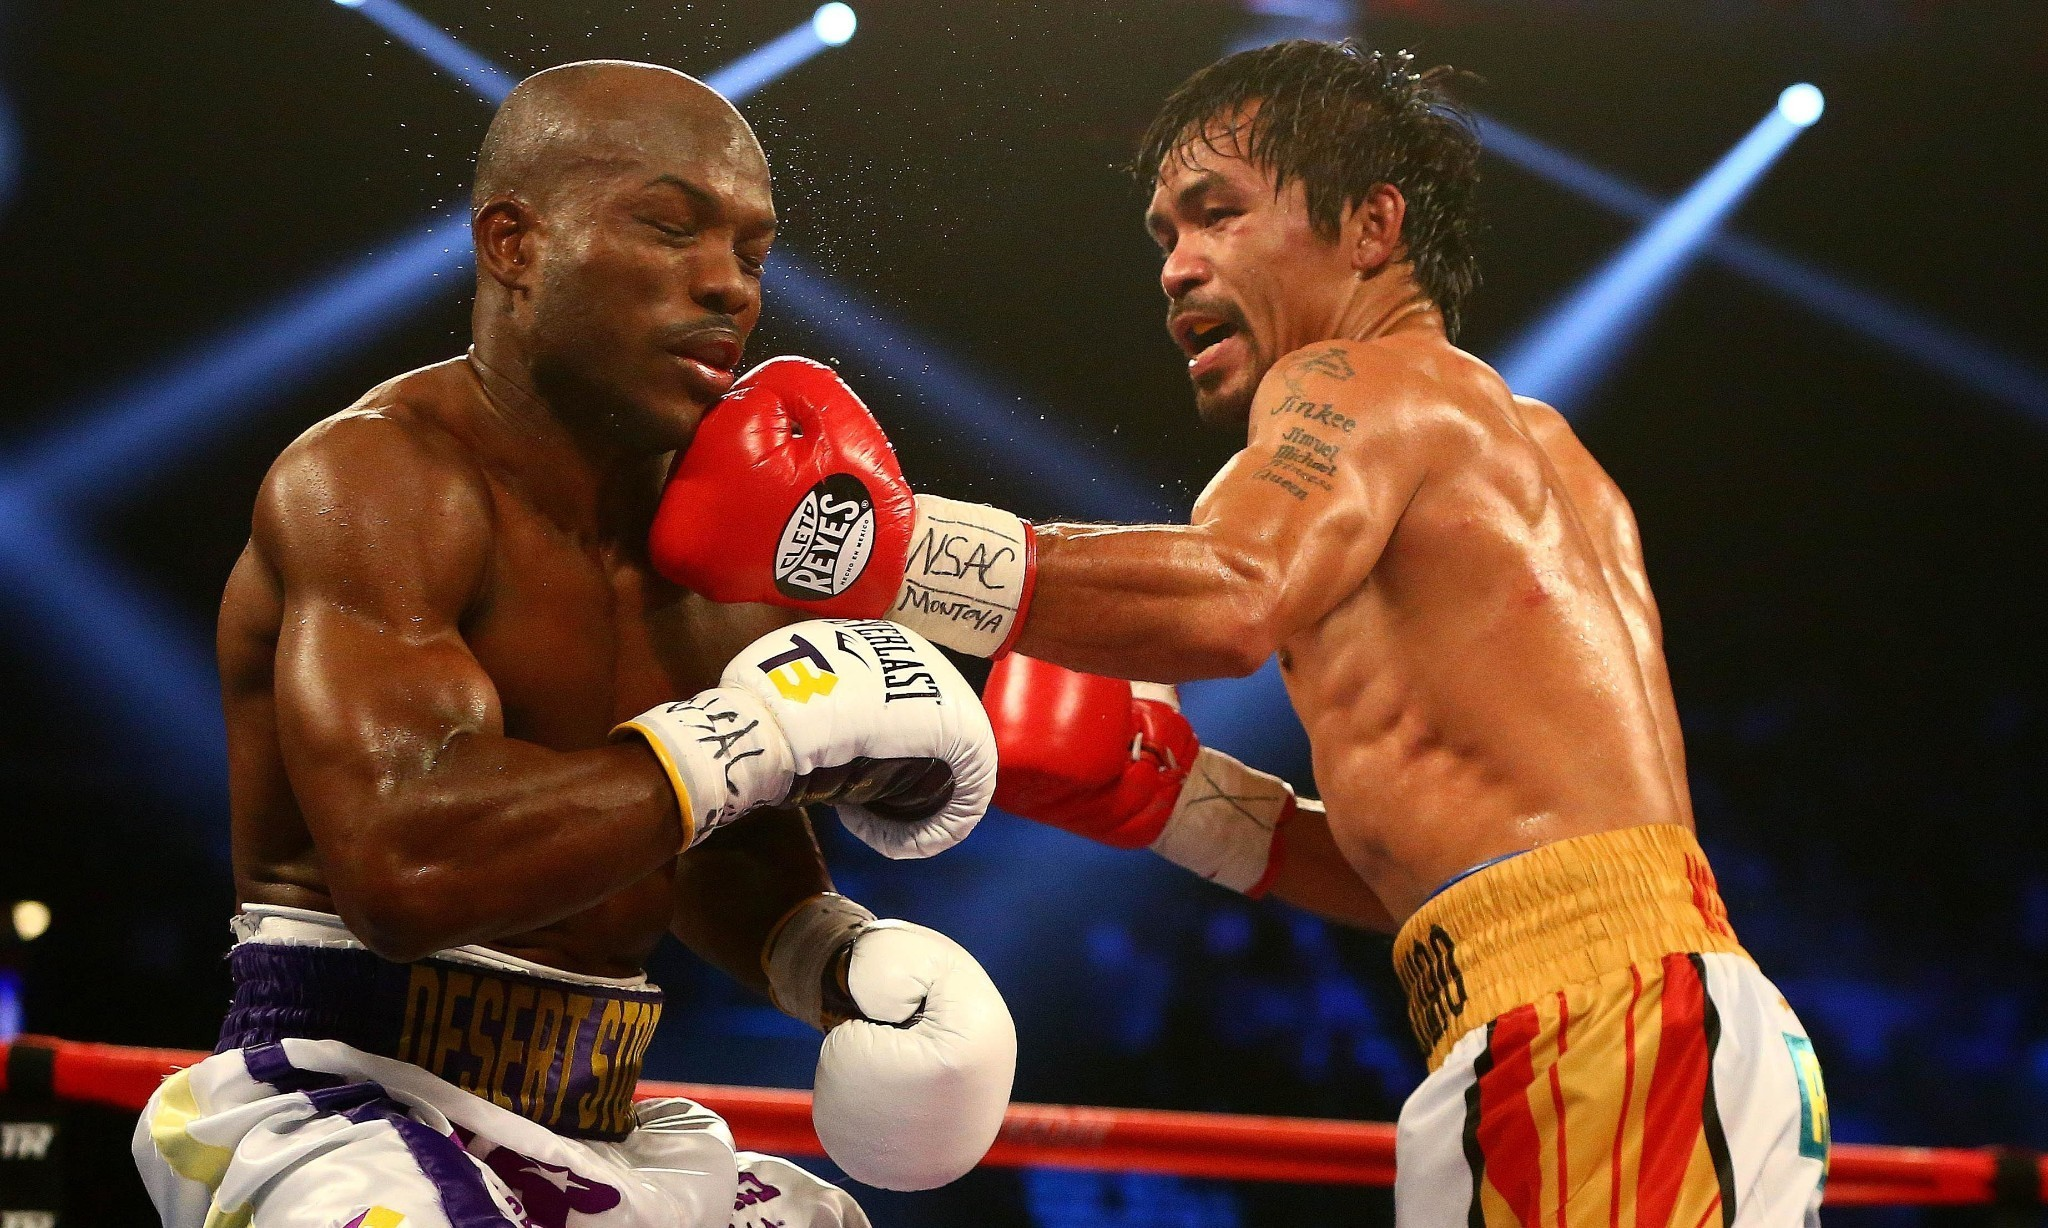 The Great Manny Pacquiao And Boxing - Magazine cover